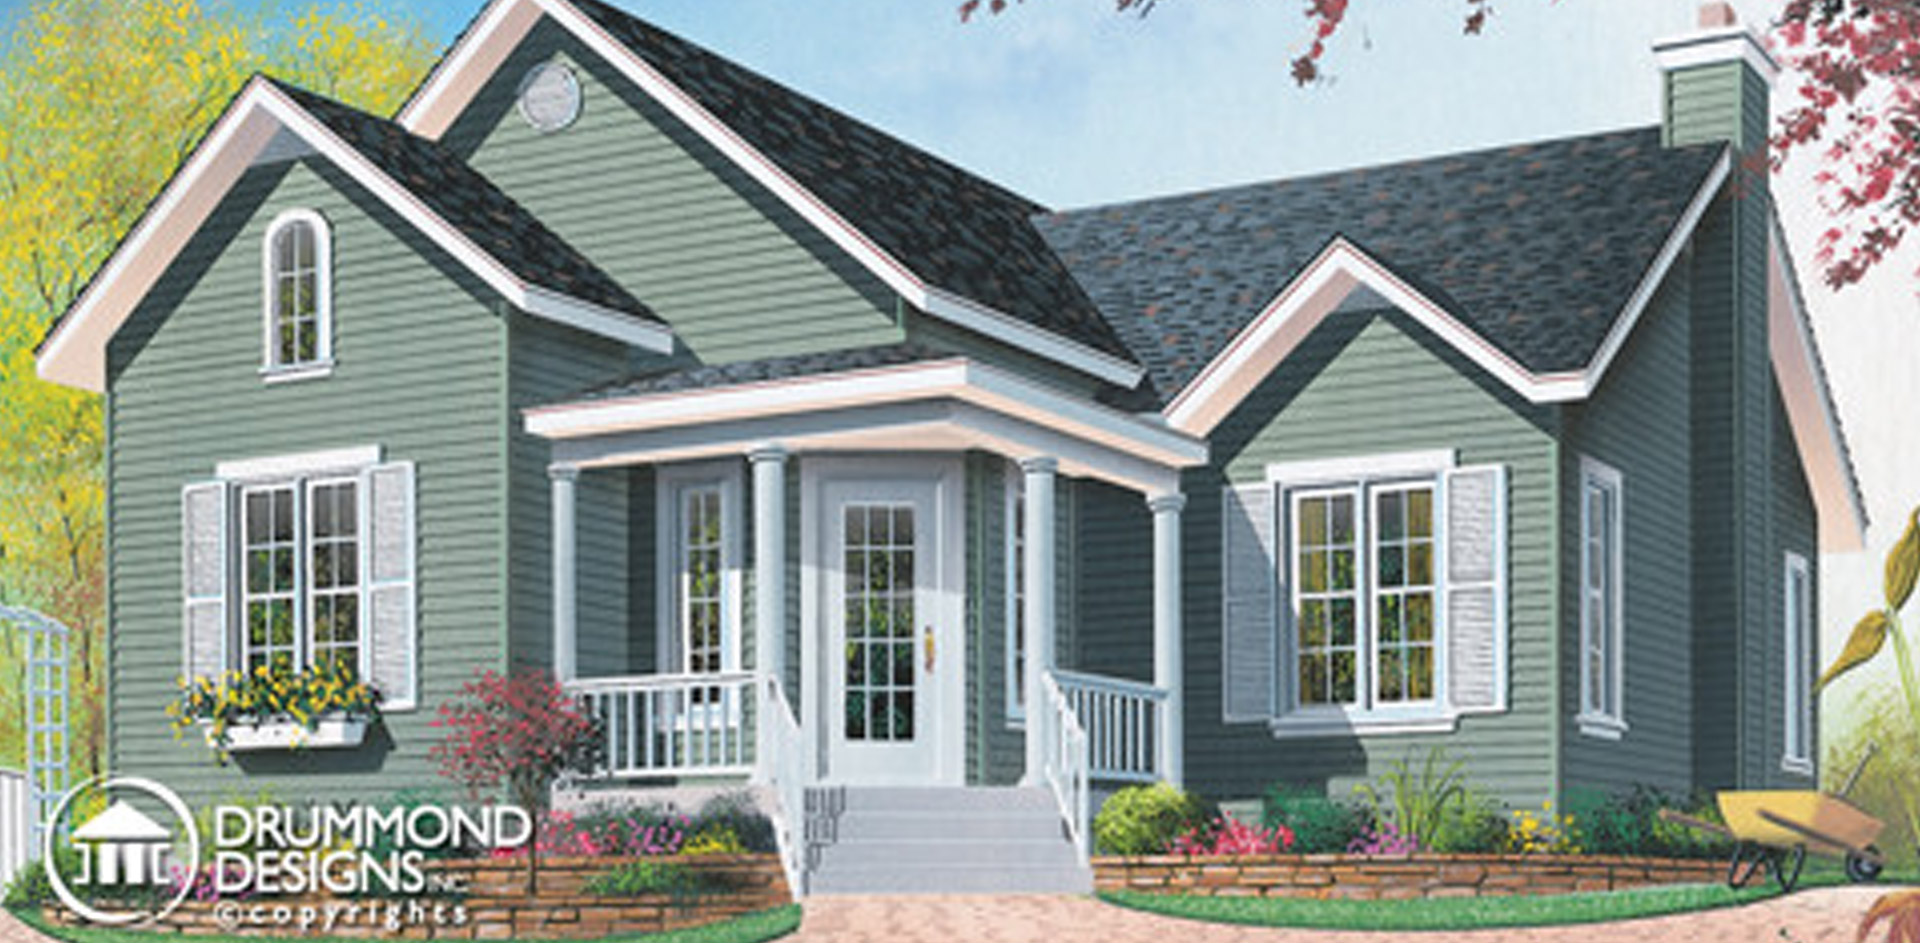 1177 sq.ft. timber mart house with two bedrooms